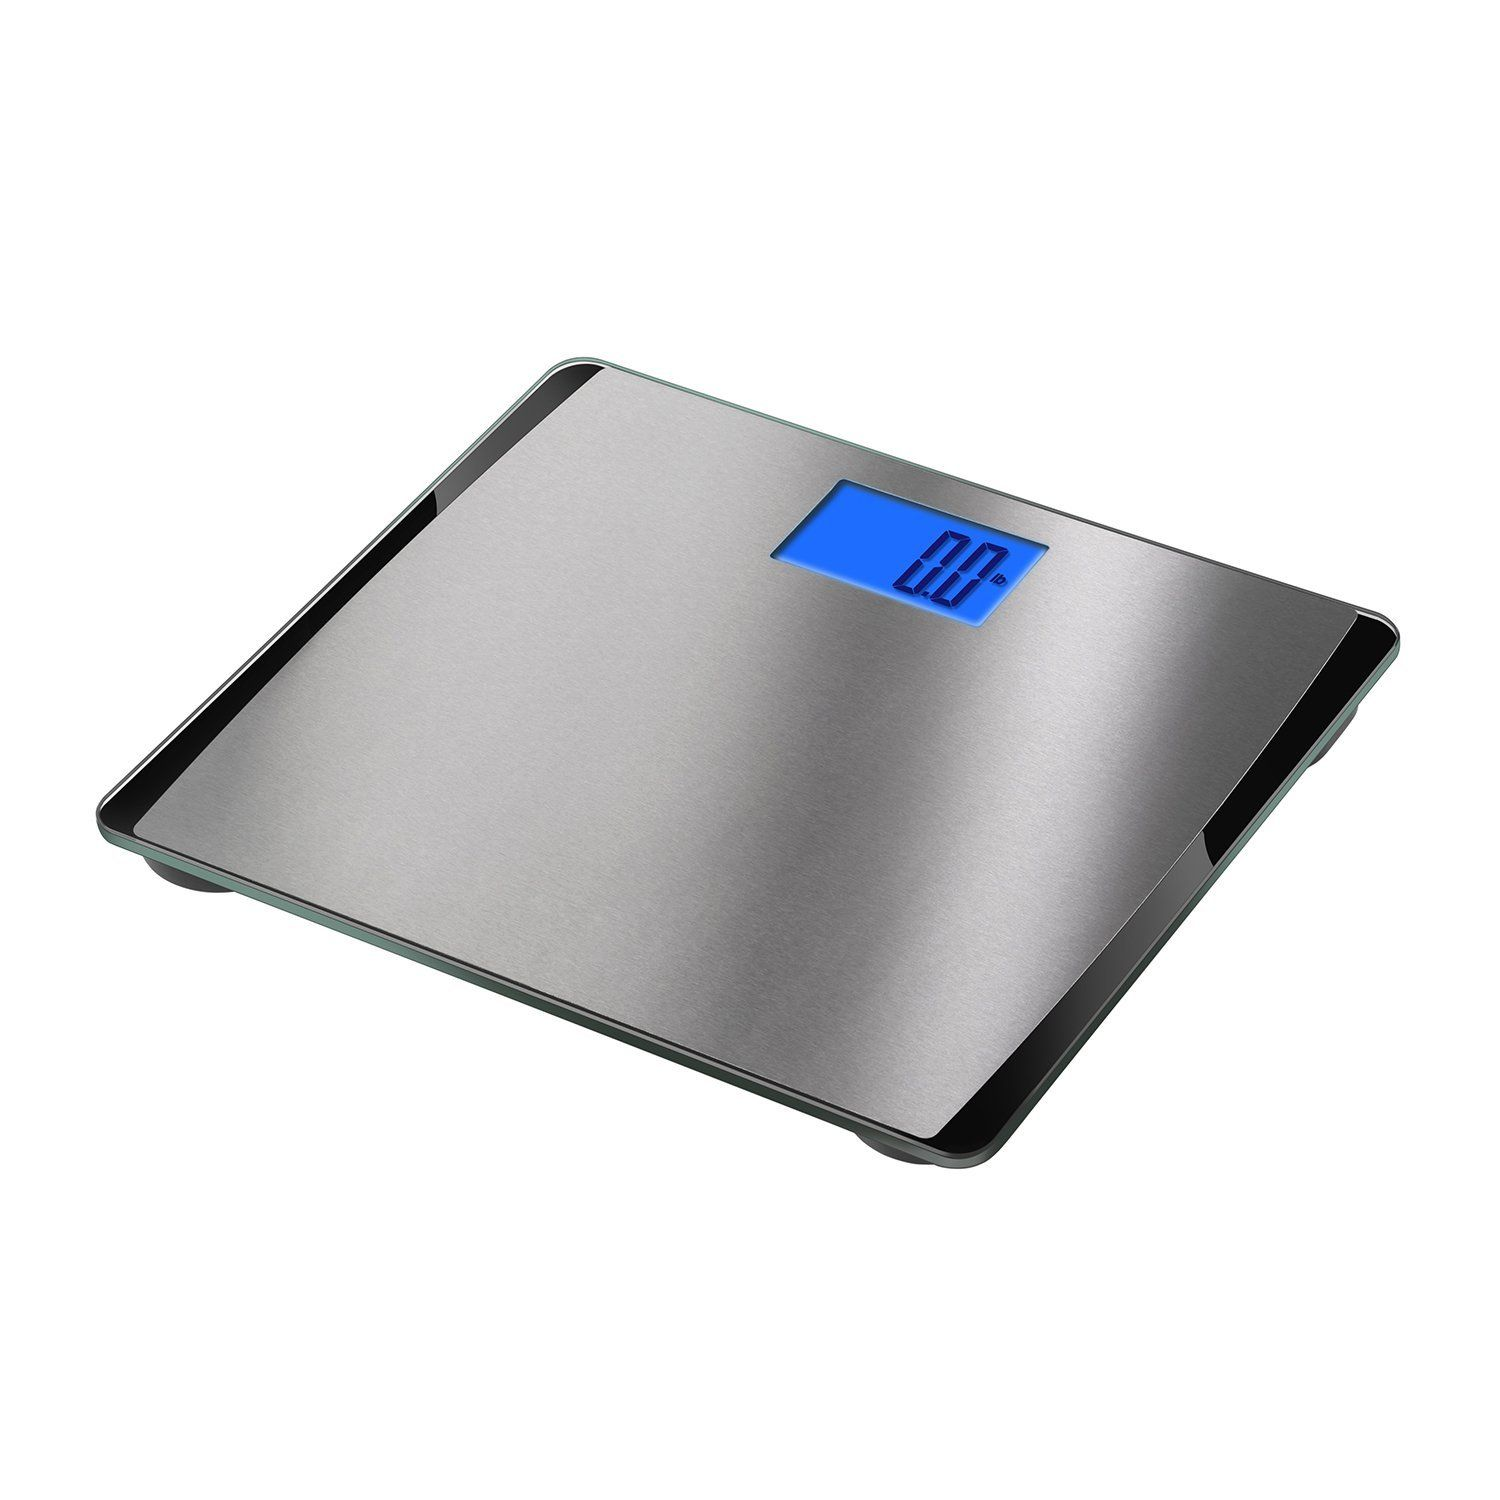 Bathroom Scale Reviews Consumer Reports In 2020 Digital Scale